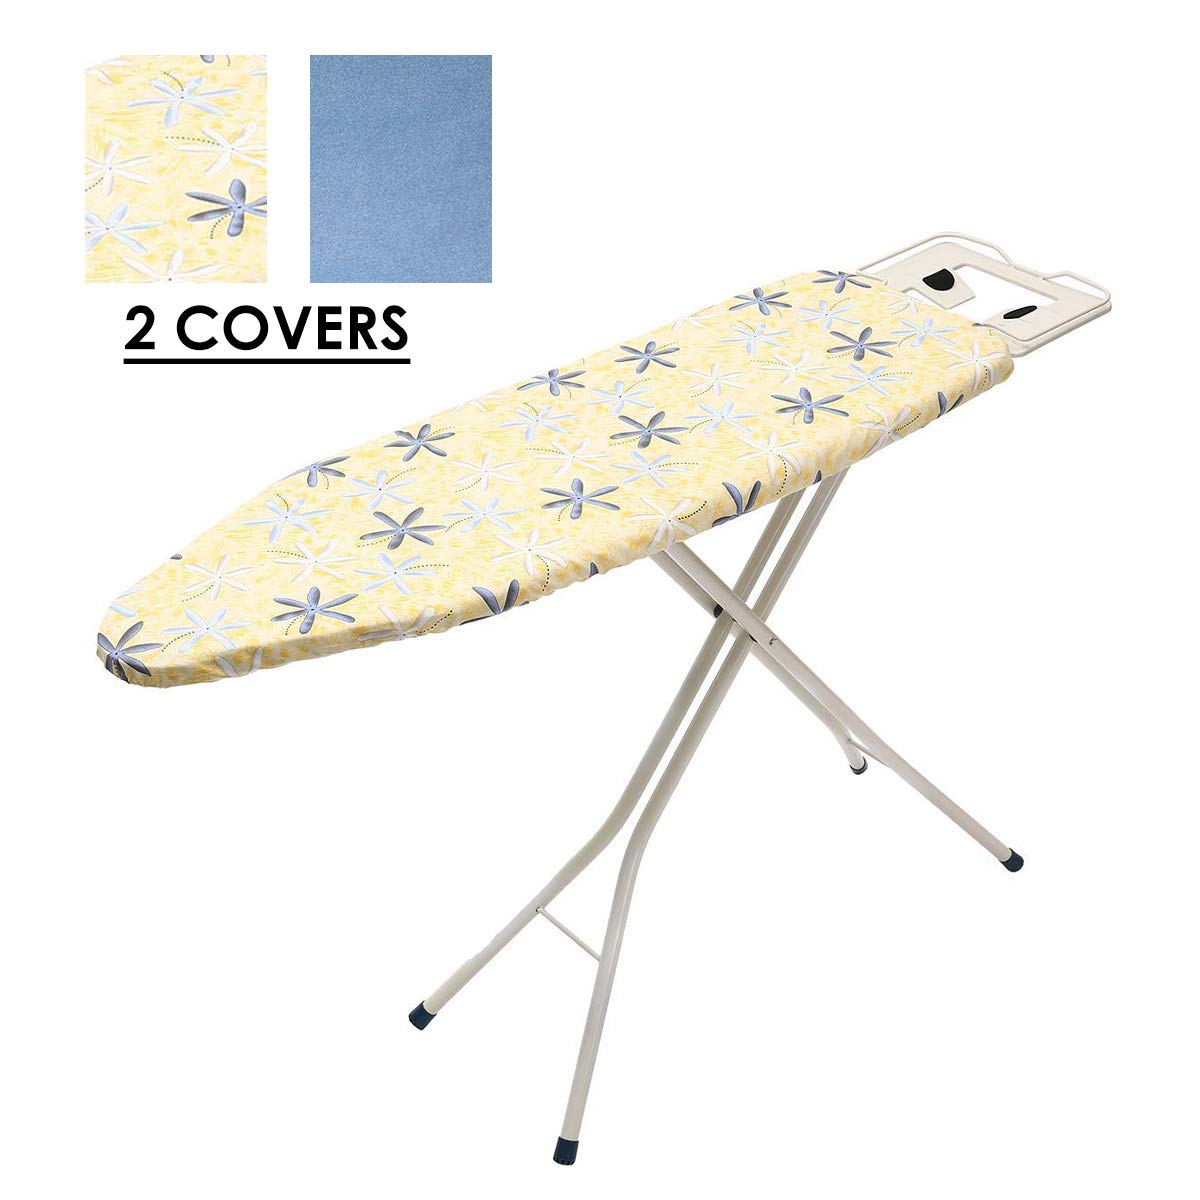 KINGSO 43''Lx13''Wx 32''H 4-Leg Tabletop Ironing Board with Iron Rest Iron Cover